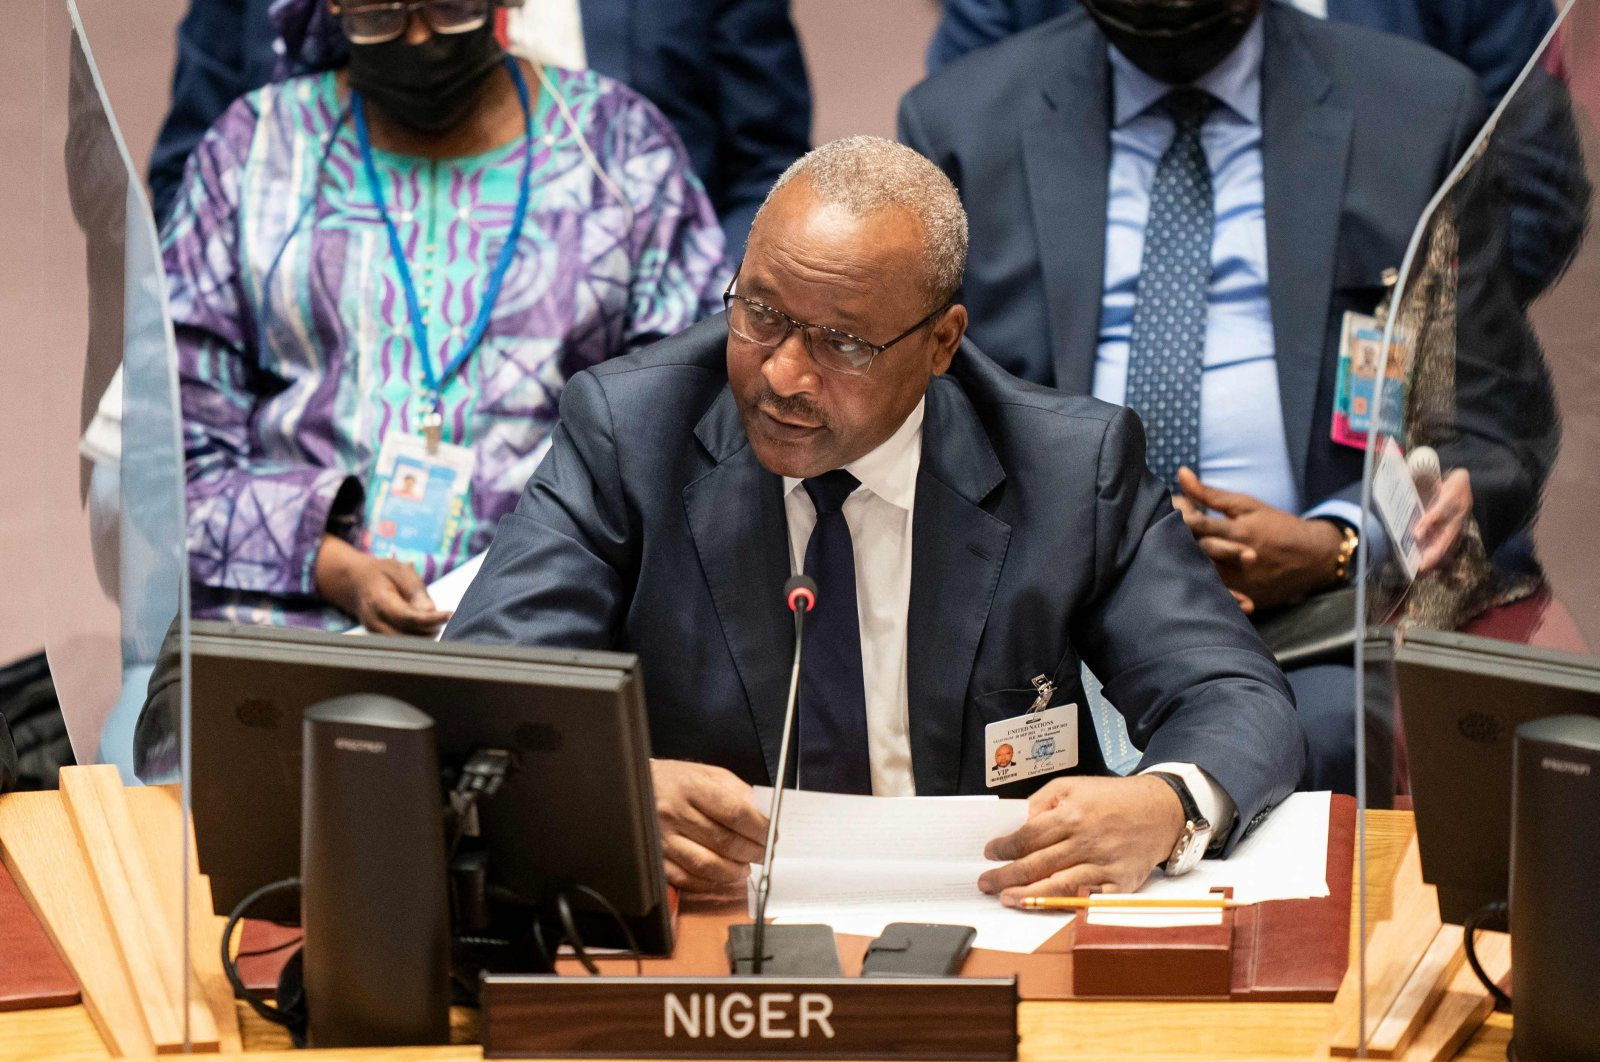 Minister of Foreign Affairs of Niger Hassoumi Massaoudou speaks during a meeting of the 76th U.N. General Assembly in New York, U.S., Sept. 23, 2021. (AFP Photo)